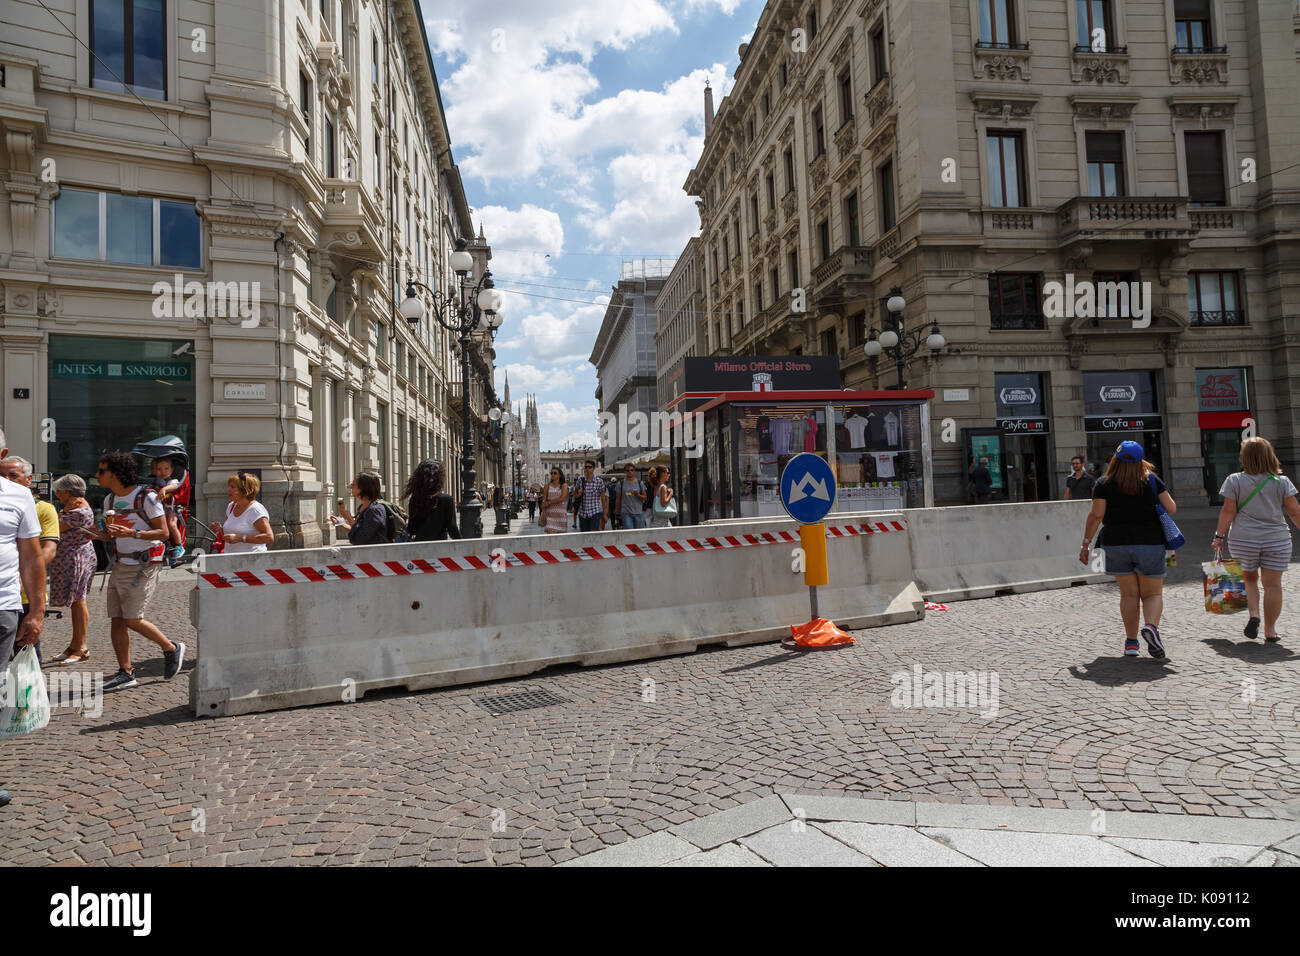 Jersey barriers in Piazza Cordusio, Milan, Italy - Stock Image